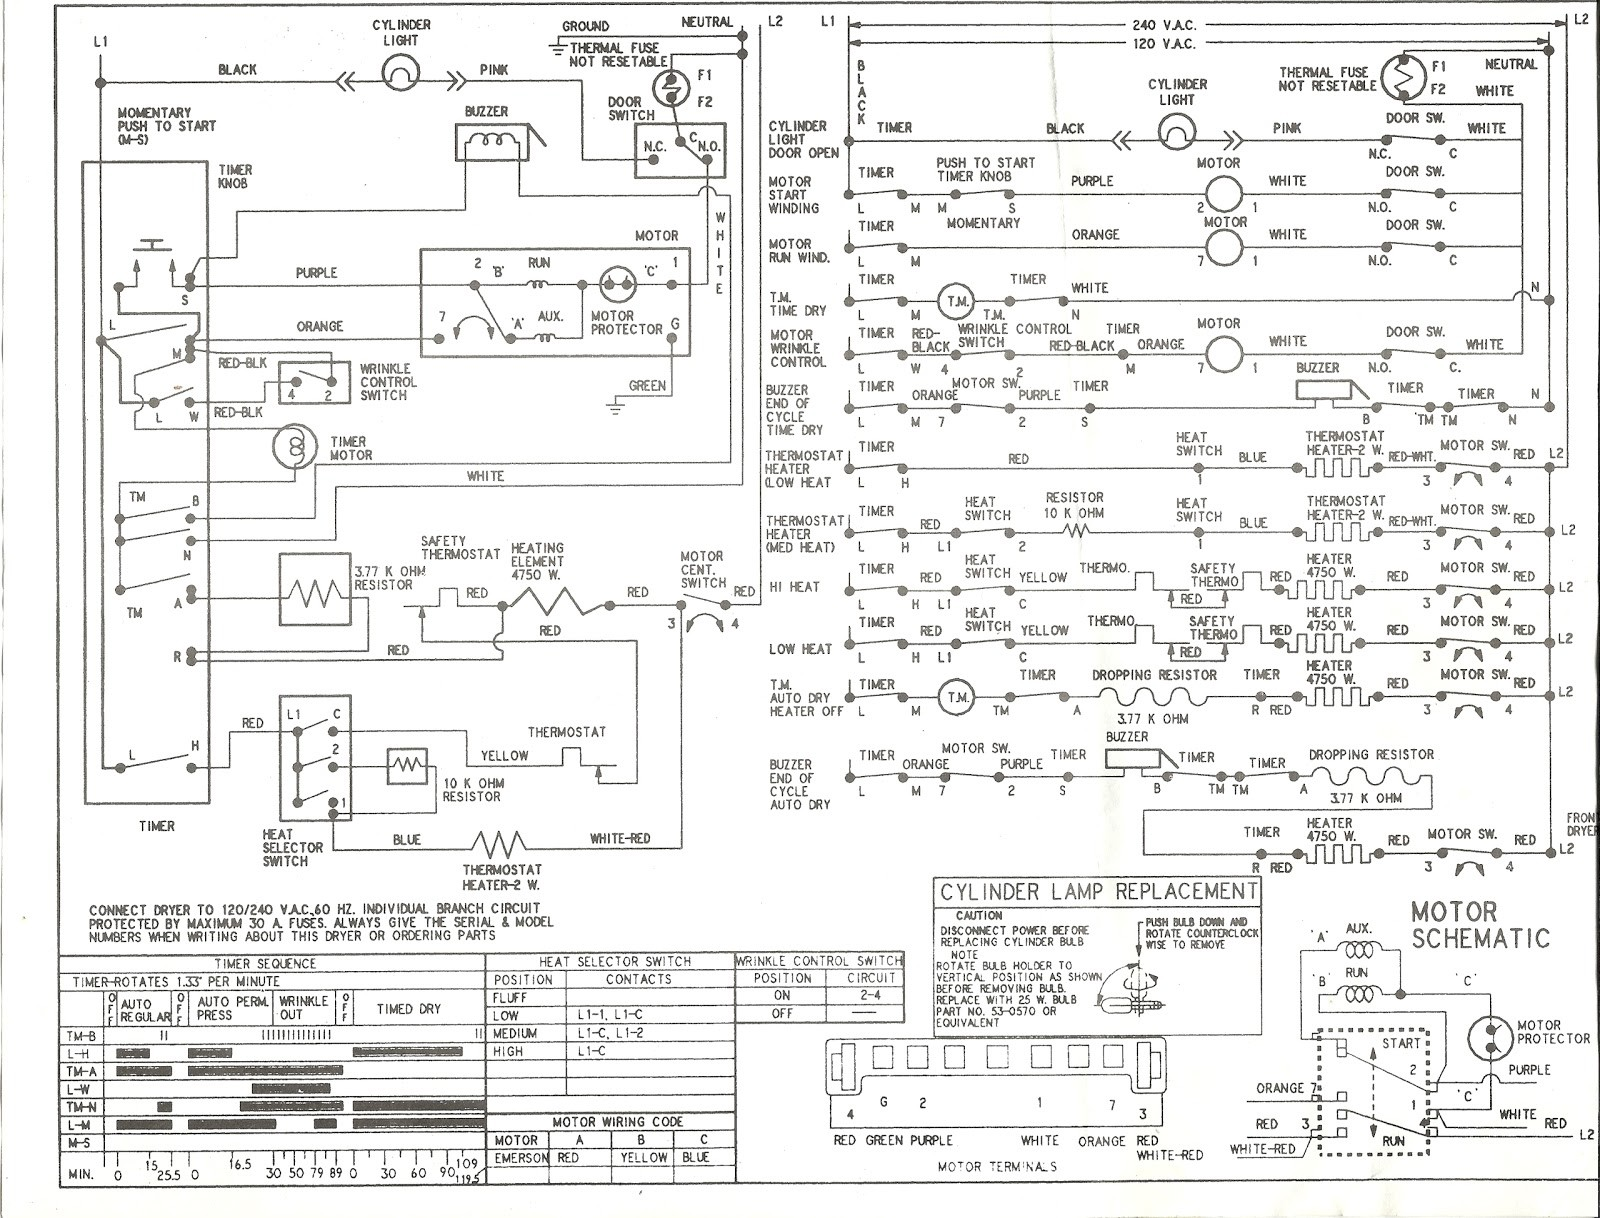 Samsung Dryer Wiring Diagram